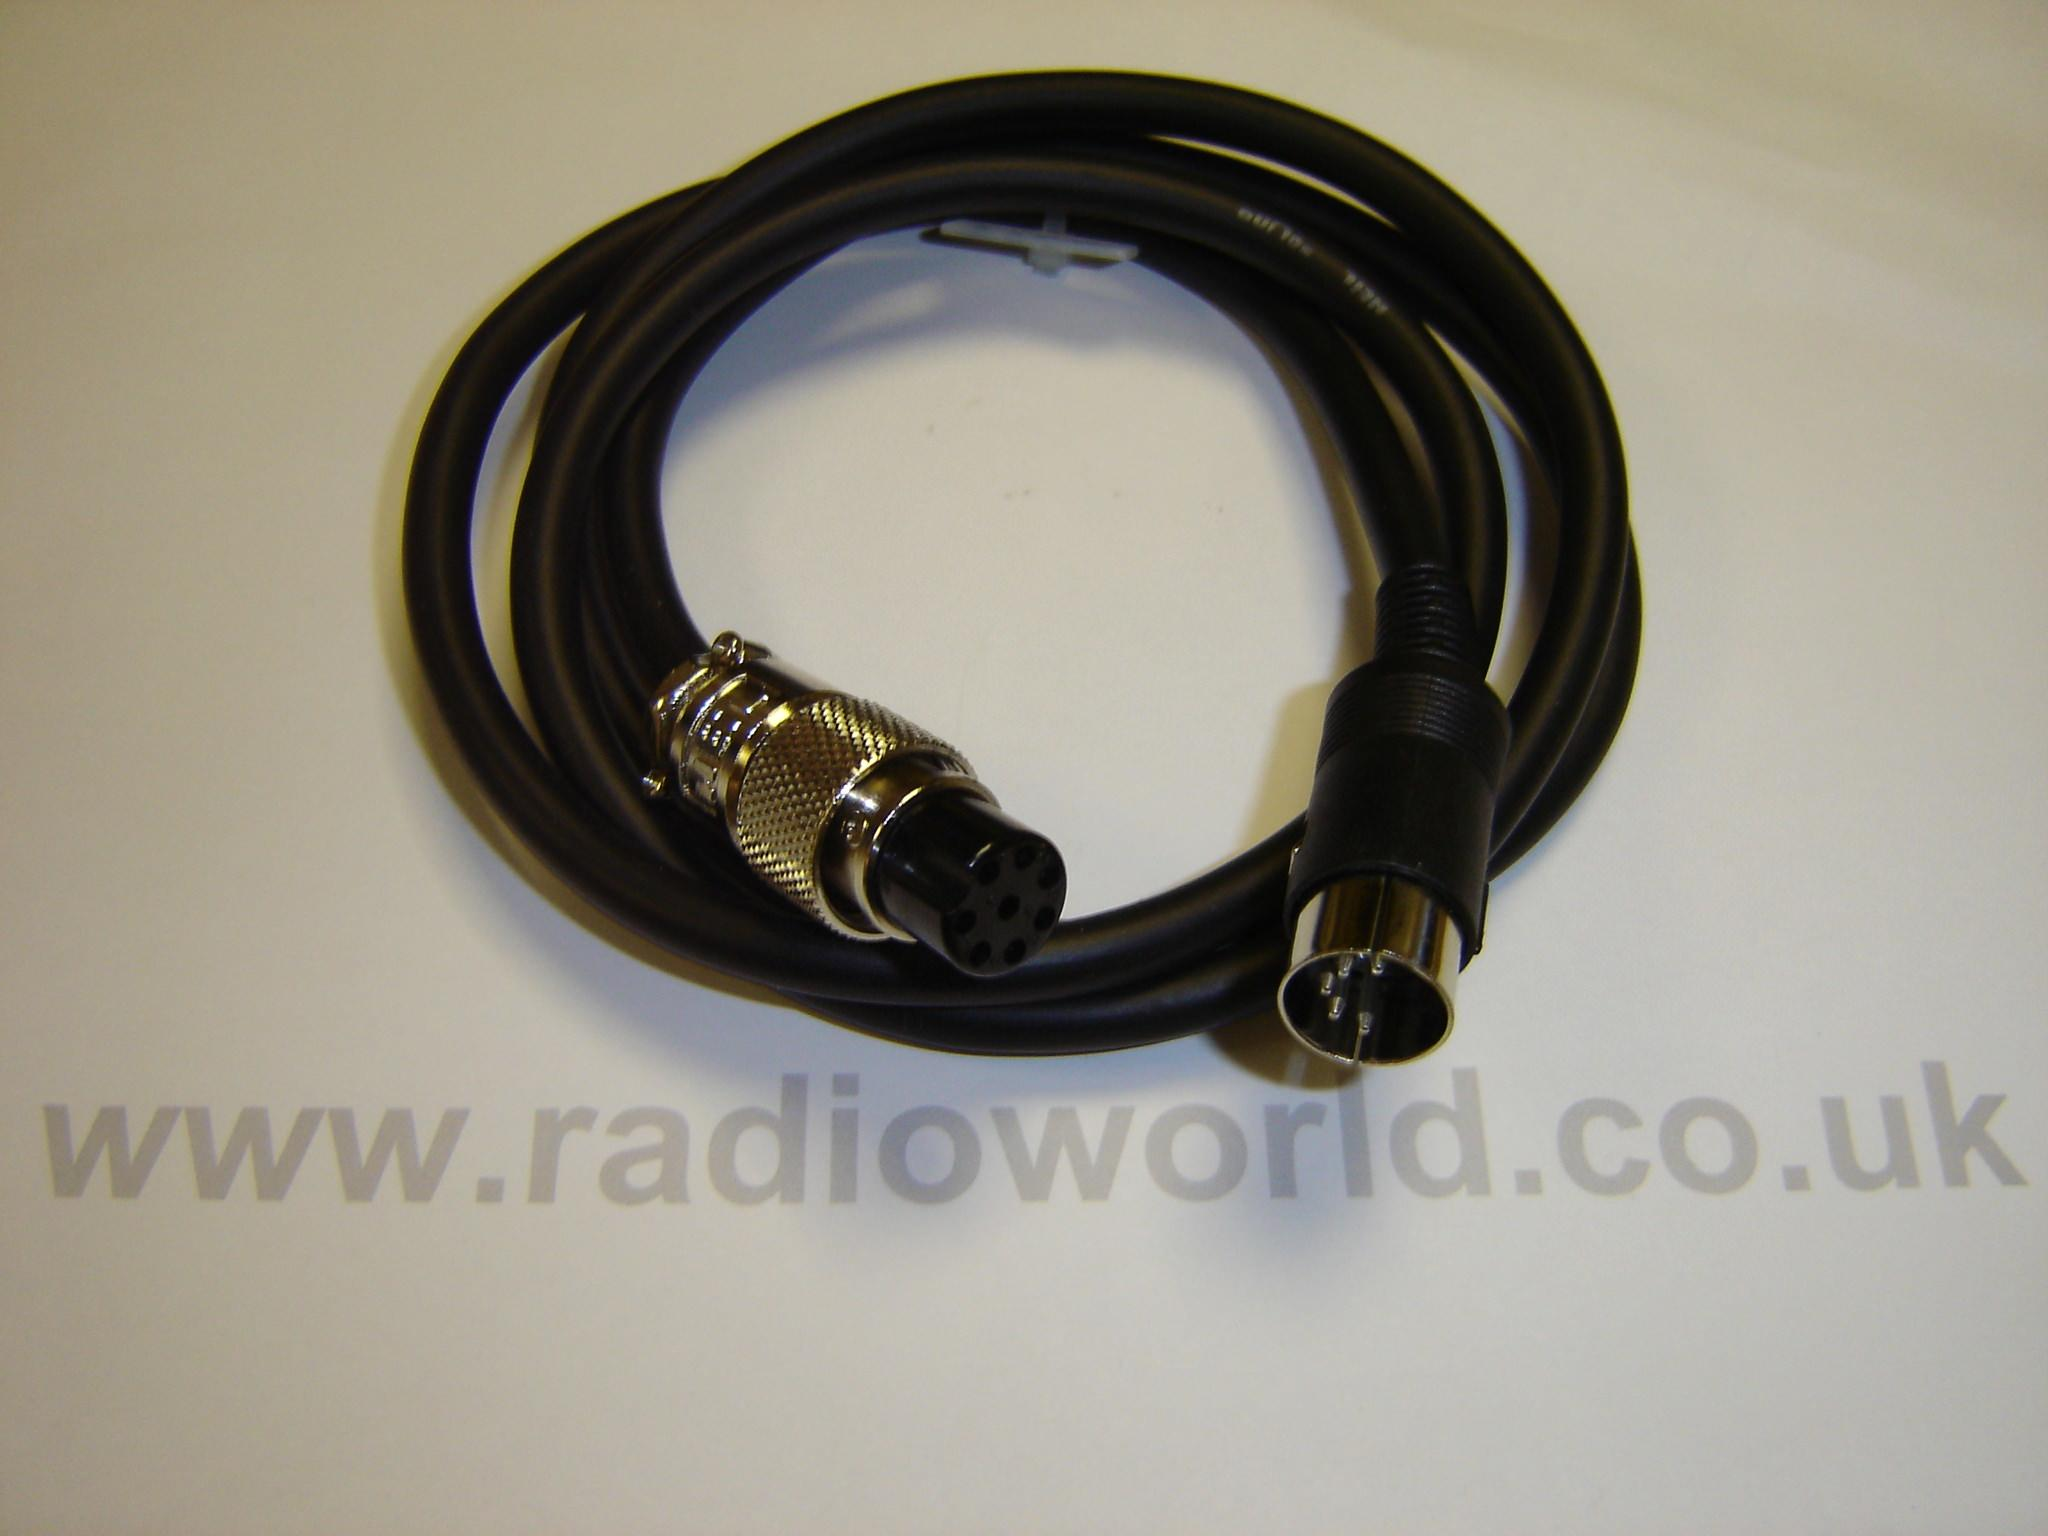 W2IHY Icom 8 Pin Round Lead for W2-8BAND